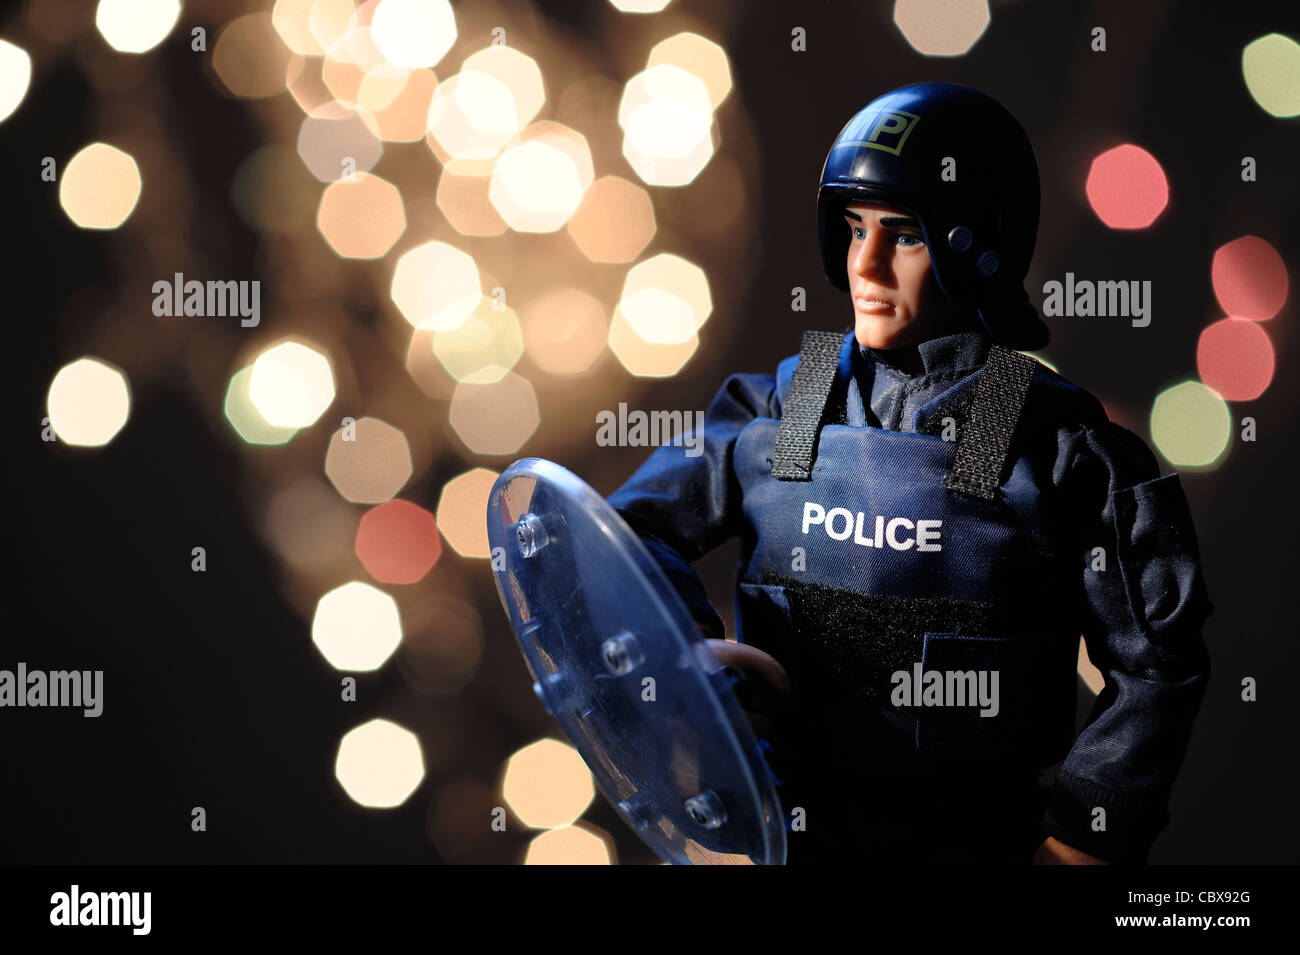 Policeman in riot gear - Stock Image